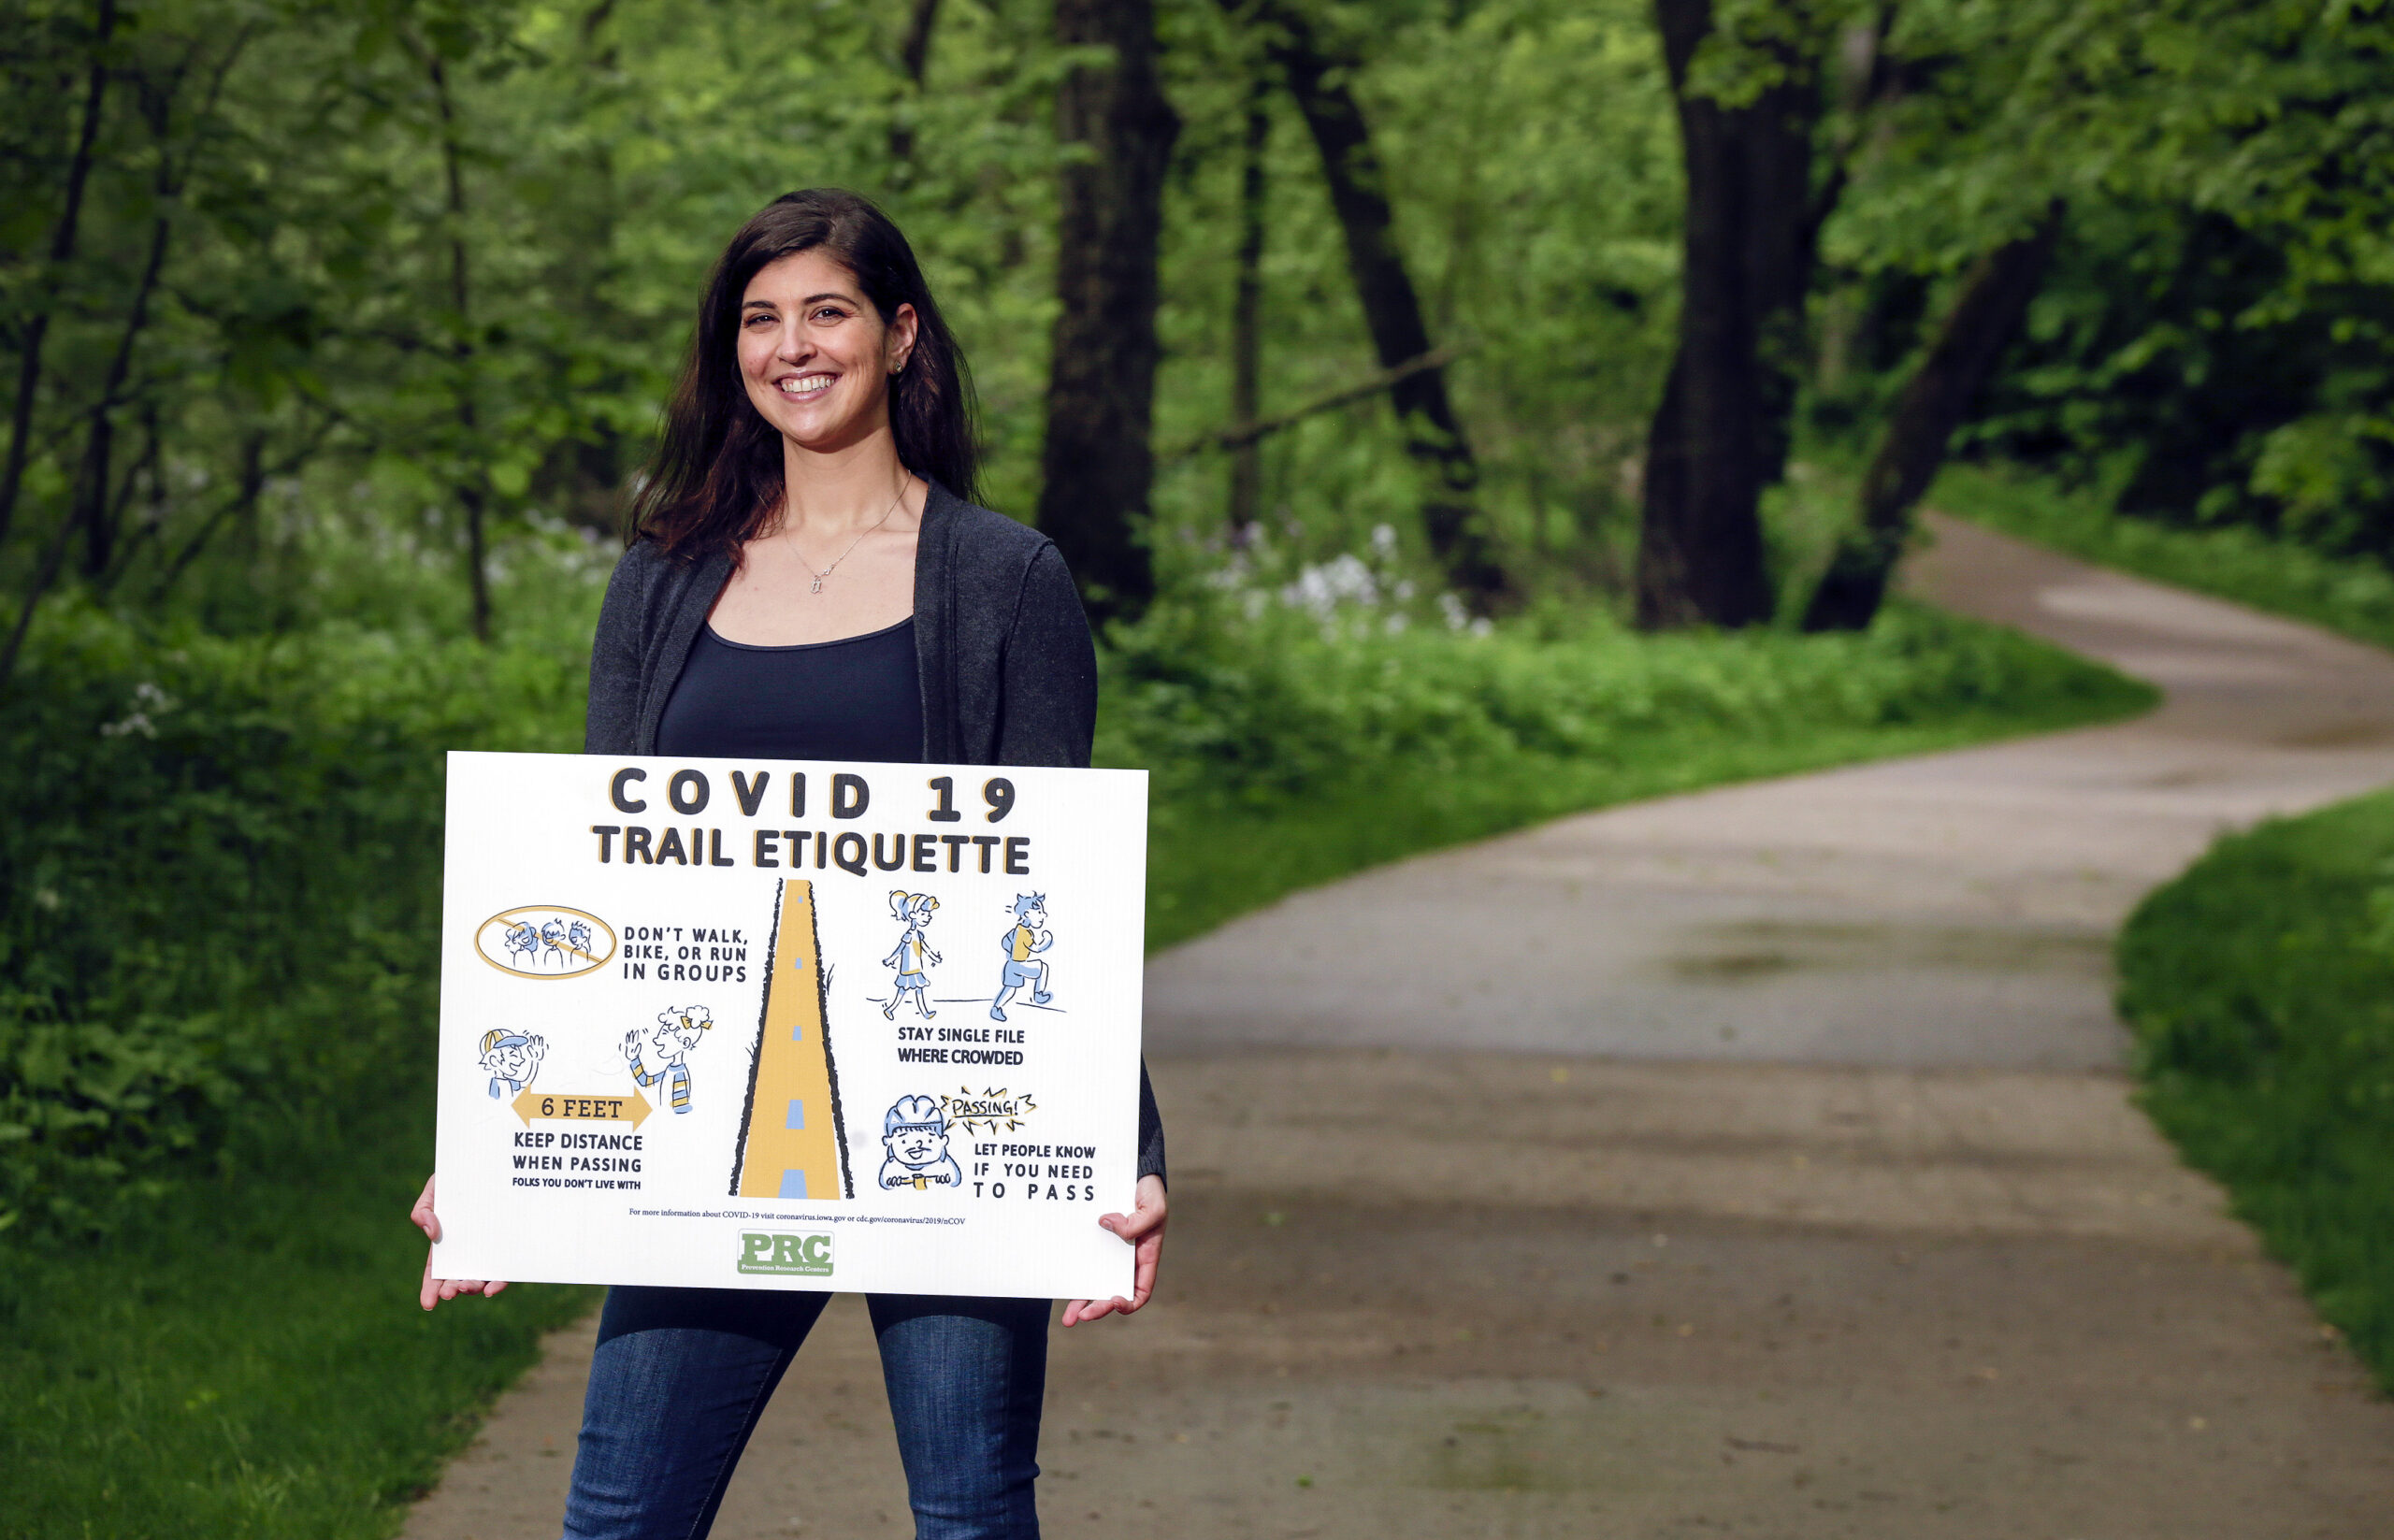 CPH student Anne Abbott posing with a COVID-19 trail etiquette sign she created.